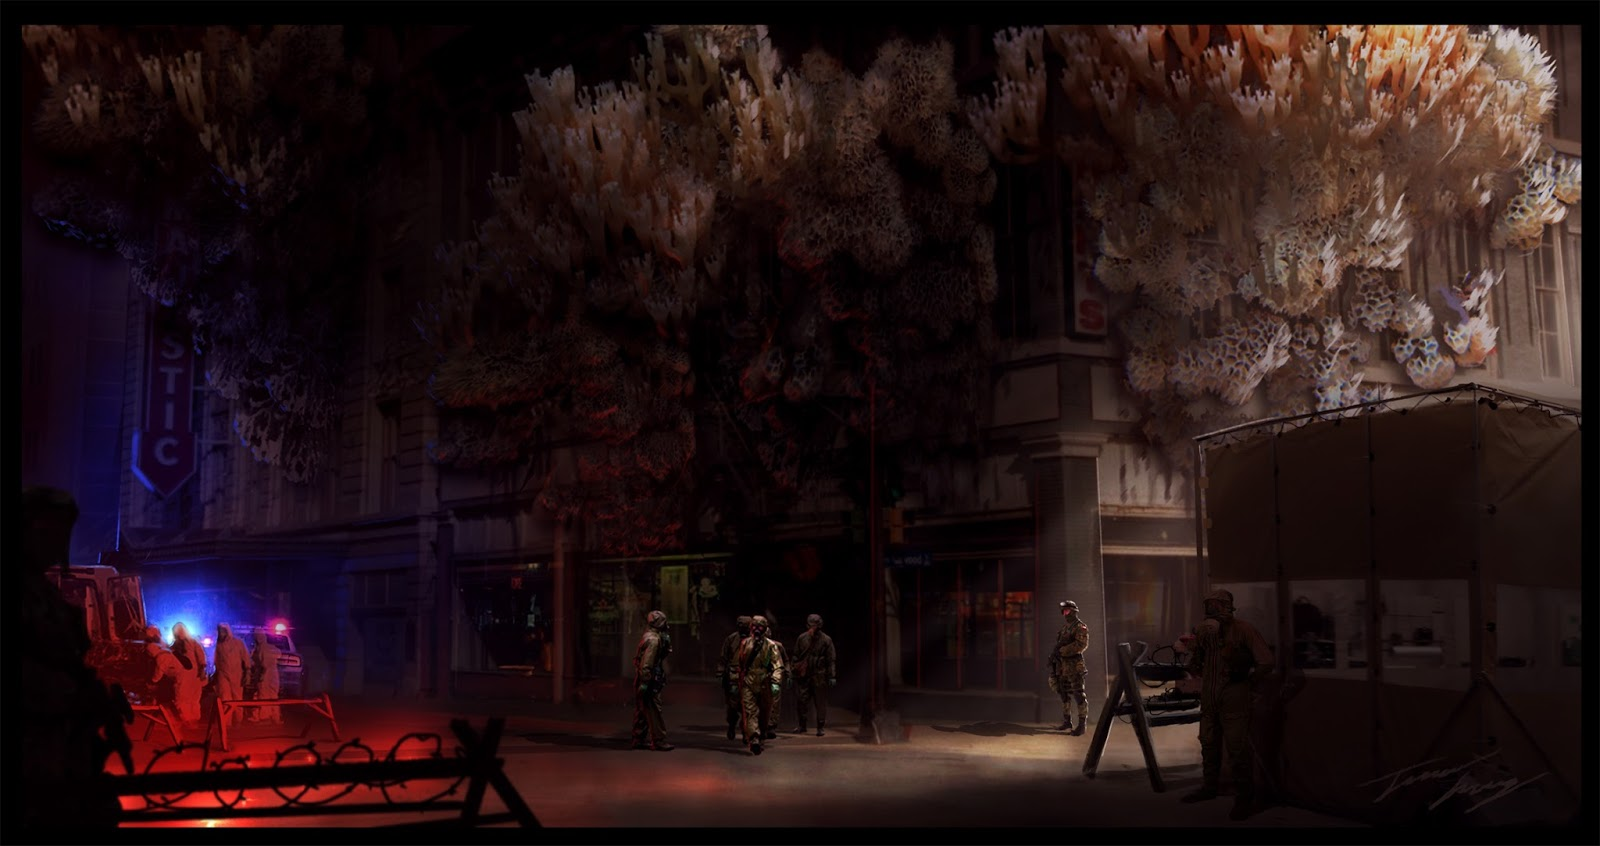 Travis_Lacey_concept_art_the_spread_quarantine_digtal_design_photo_bash